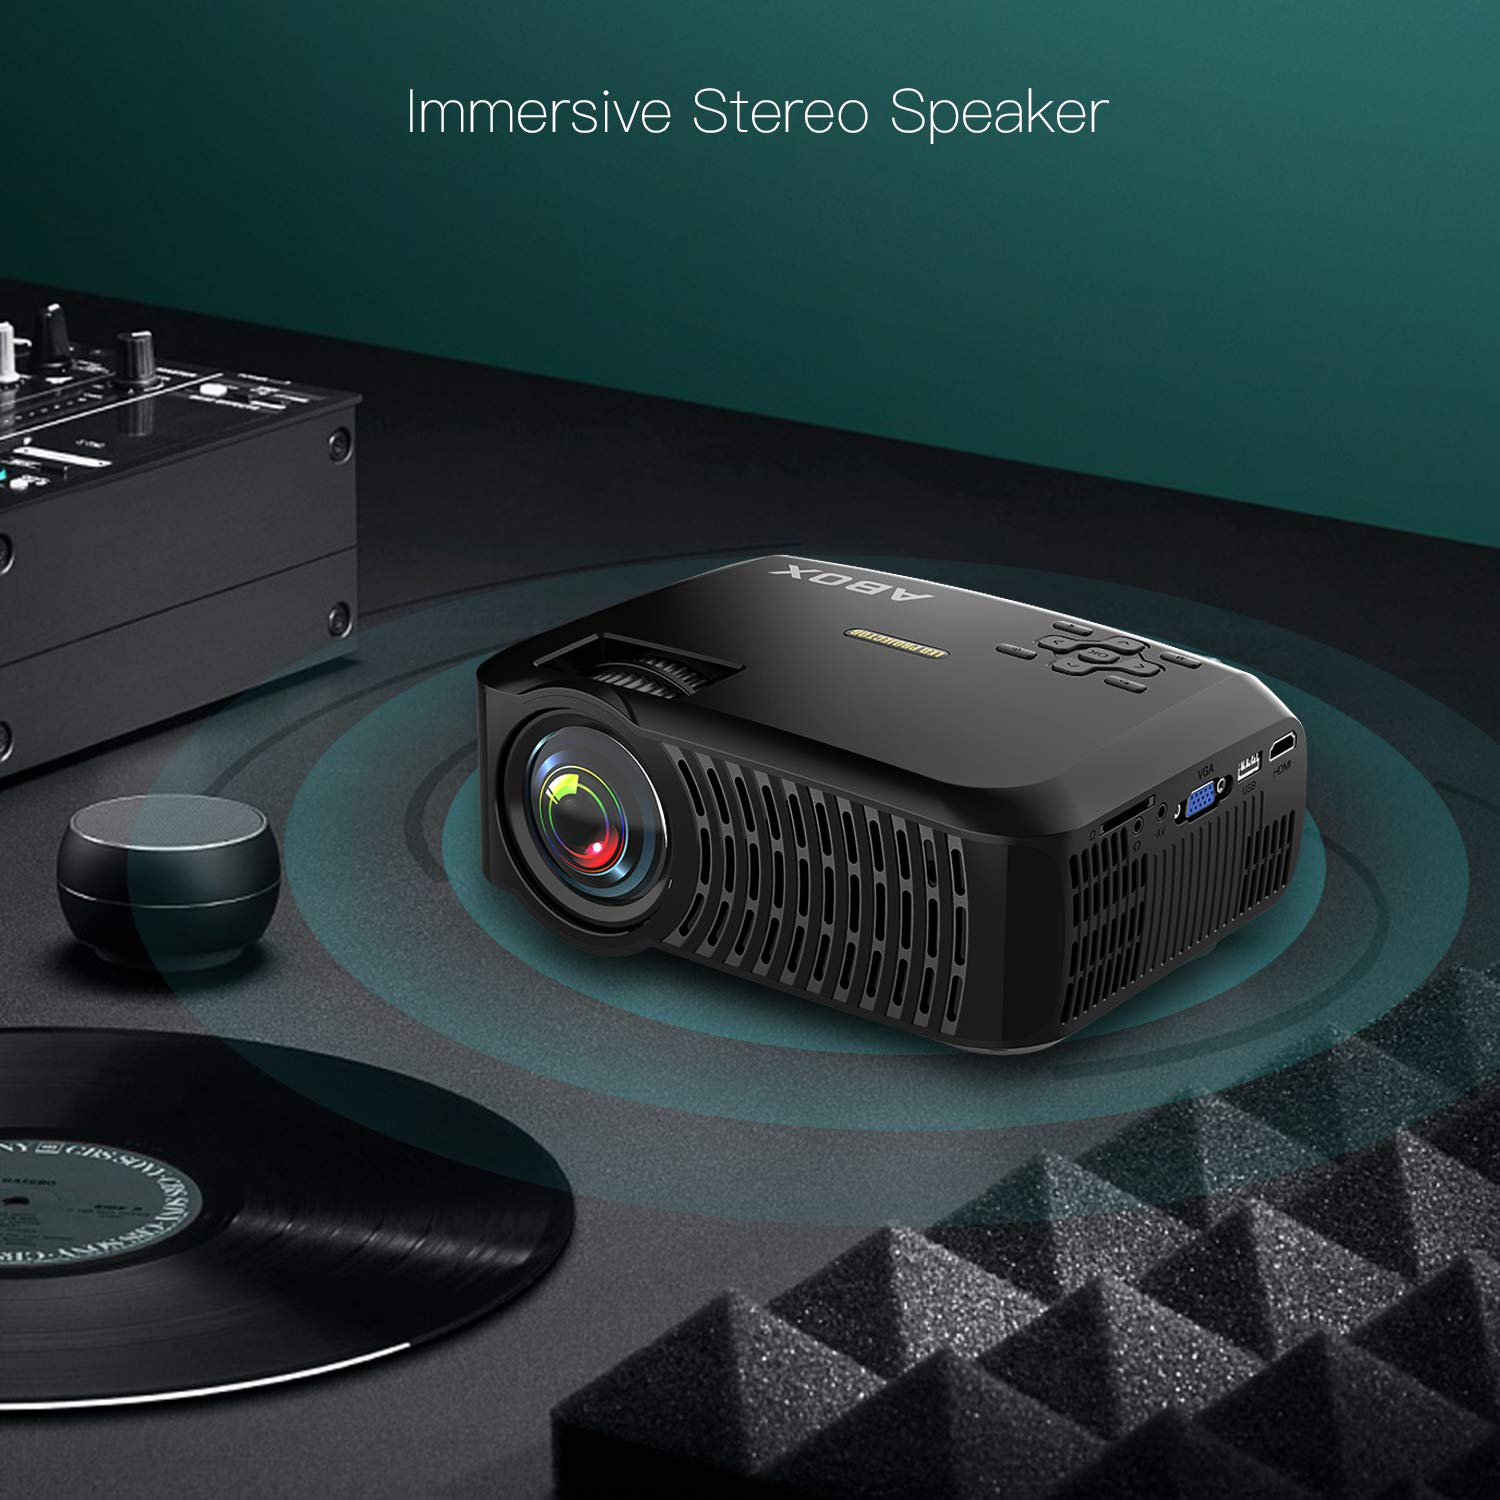 Projector, ABOX A2 LED Movie Video Projector with Full HD Native 720p, 100 ANSI Lumen, 180'' Big Screen, Hifi Speaker, Support 1080p with HDMI/USB/SD Card/VGA/AV Ports For Home Theater/Laptop/TV/Phones by GooBang Doo (Image #5)